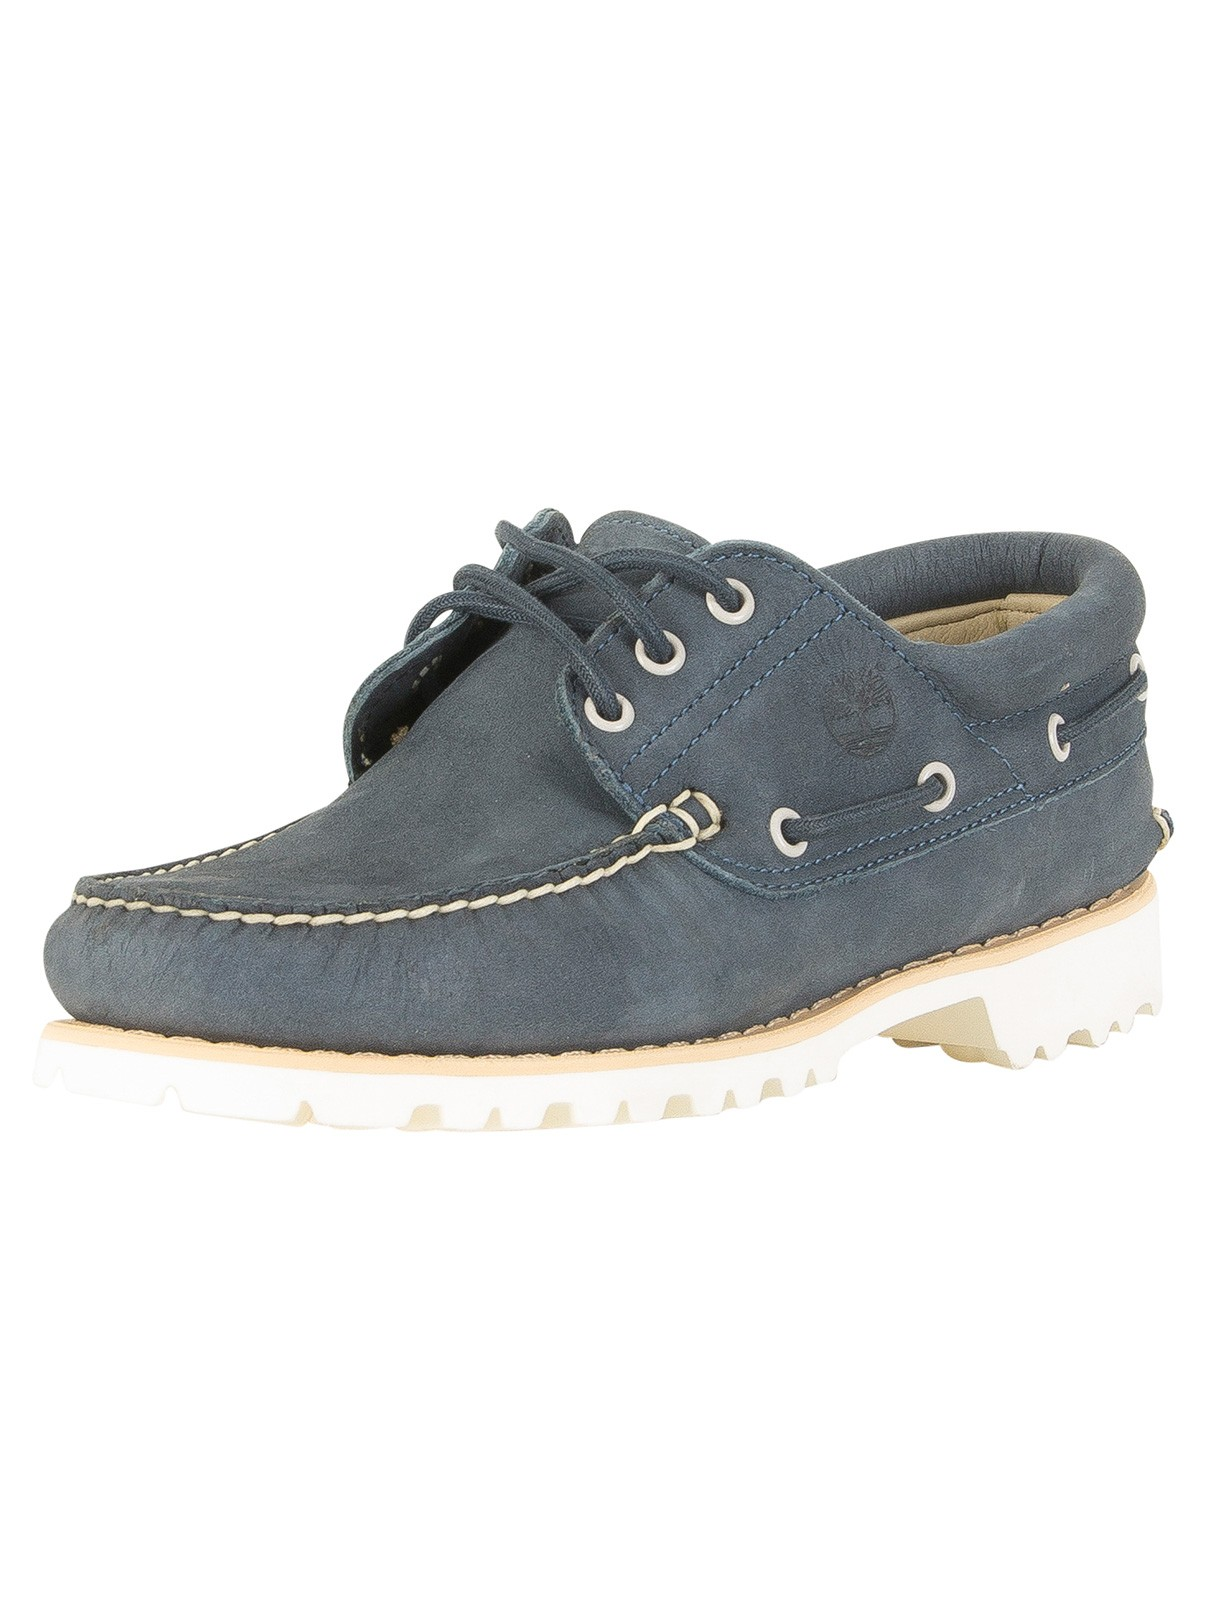 3e910385dc2 Timberland Navy Chilmark 3 Eye Hands Leather Boat Shoes